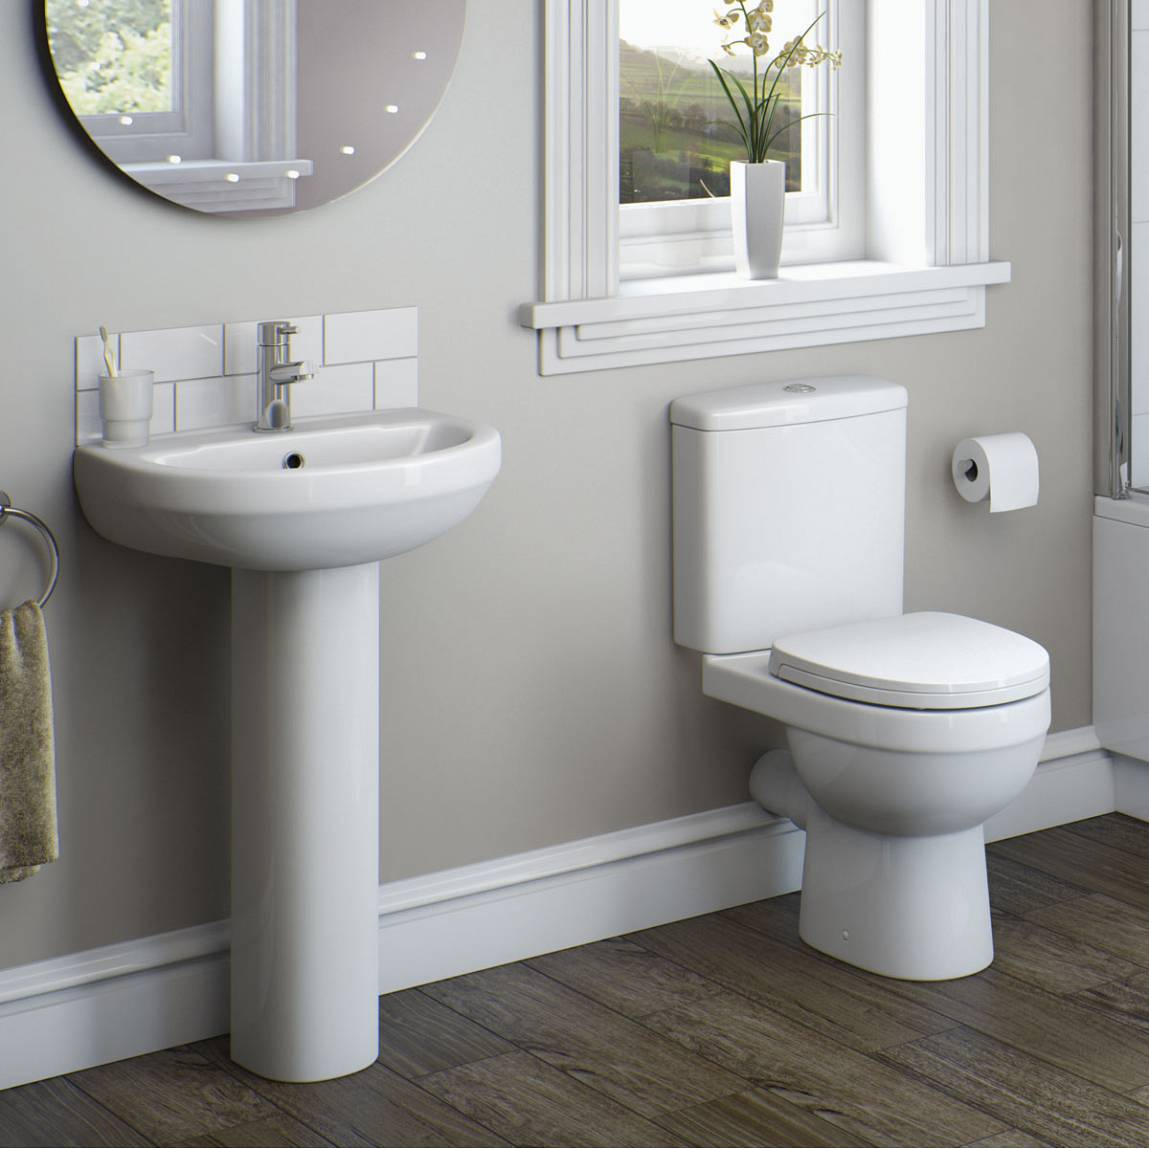 Image of Energy Short projection Toilet and Basin Suite